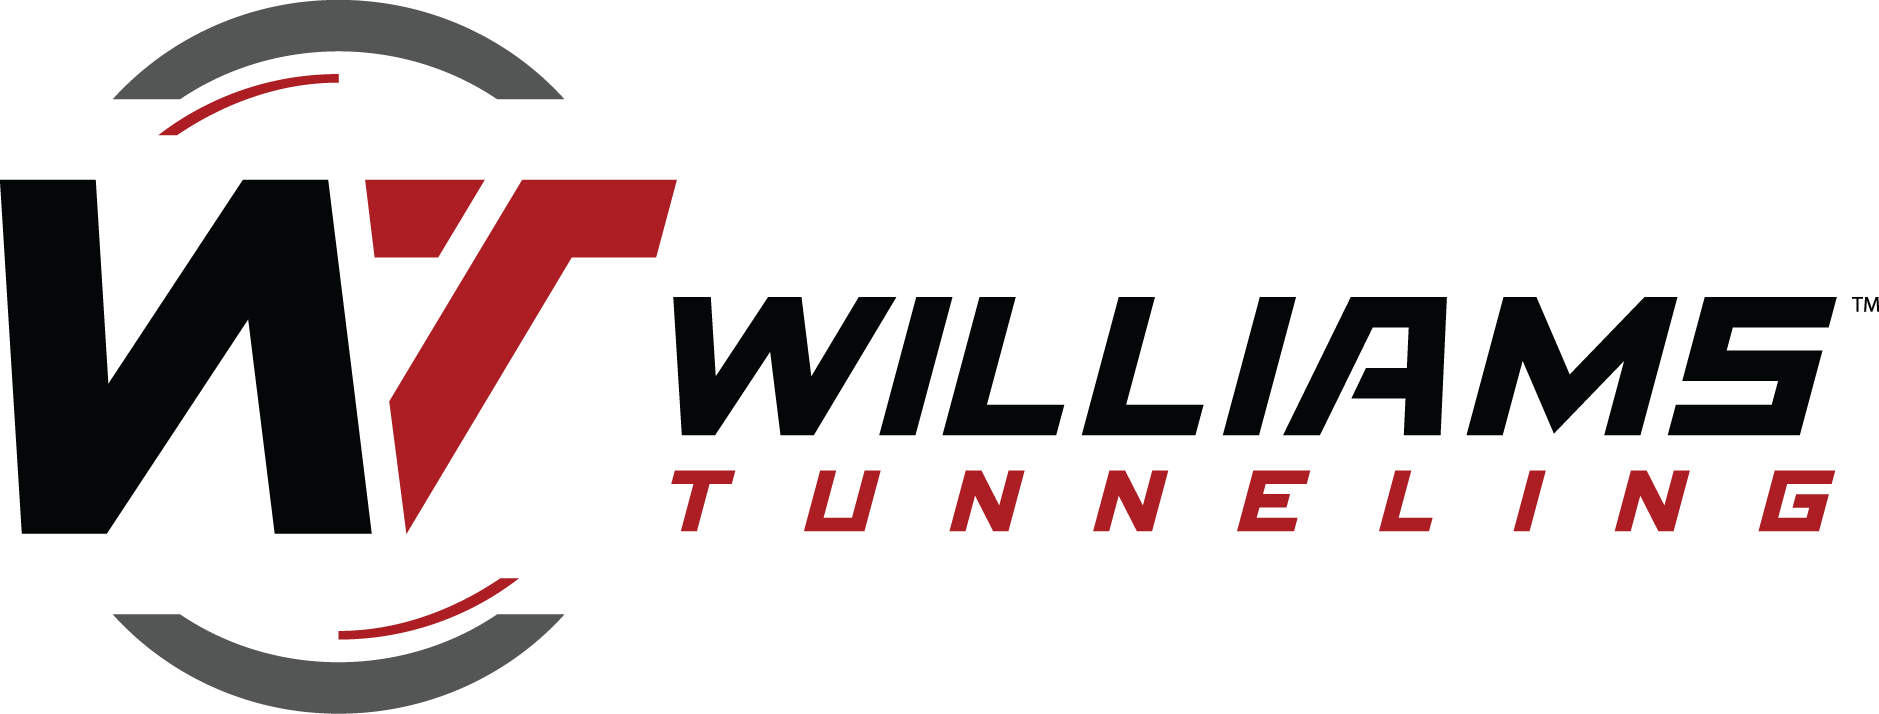 Williams Tunneling